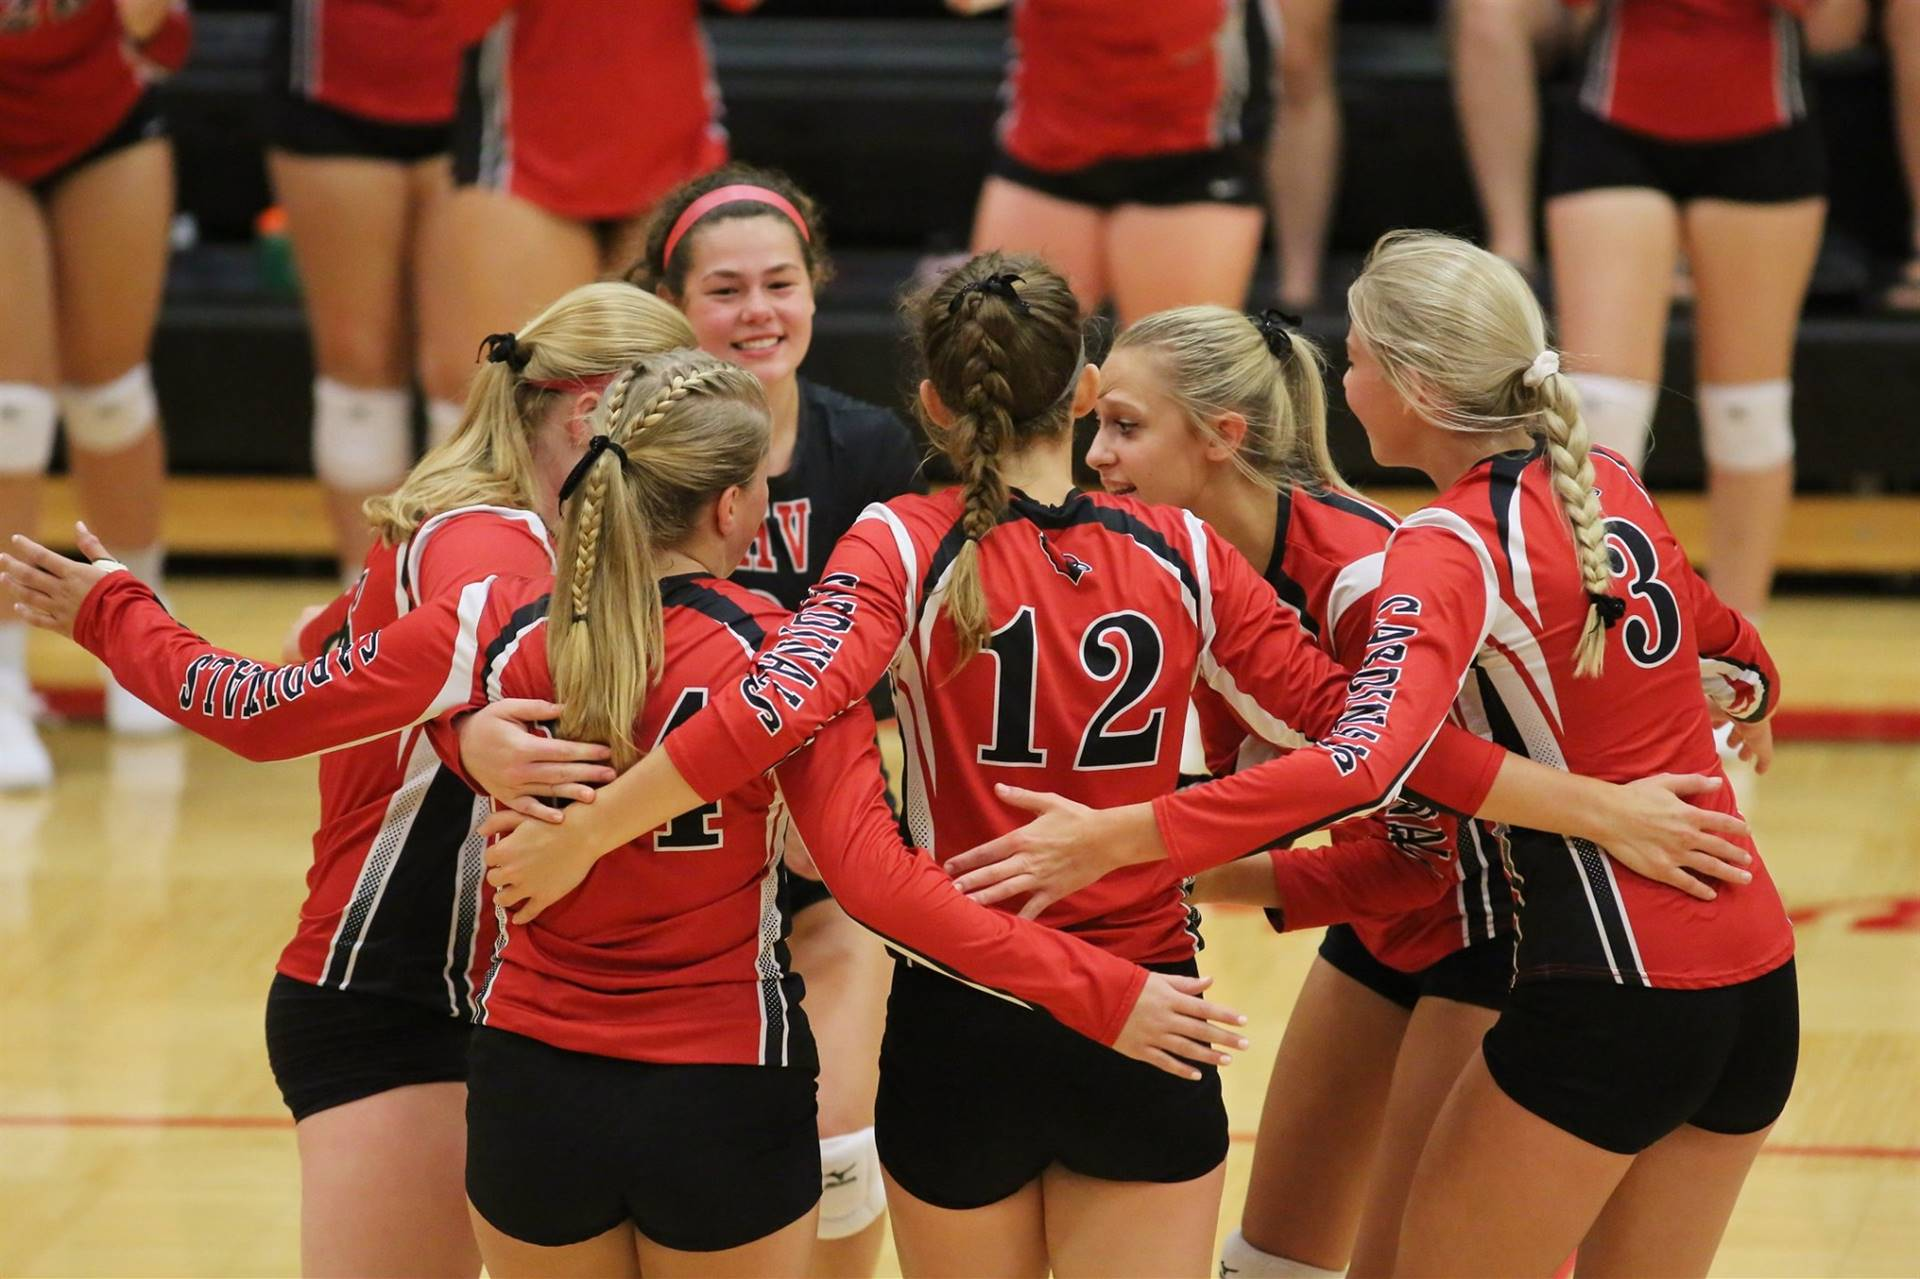 six volleyball players circling together in celebration of a point earned